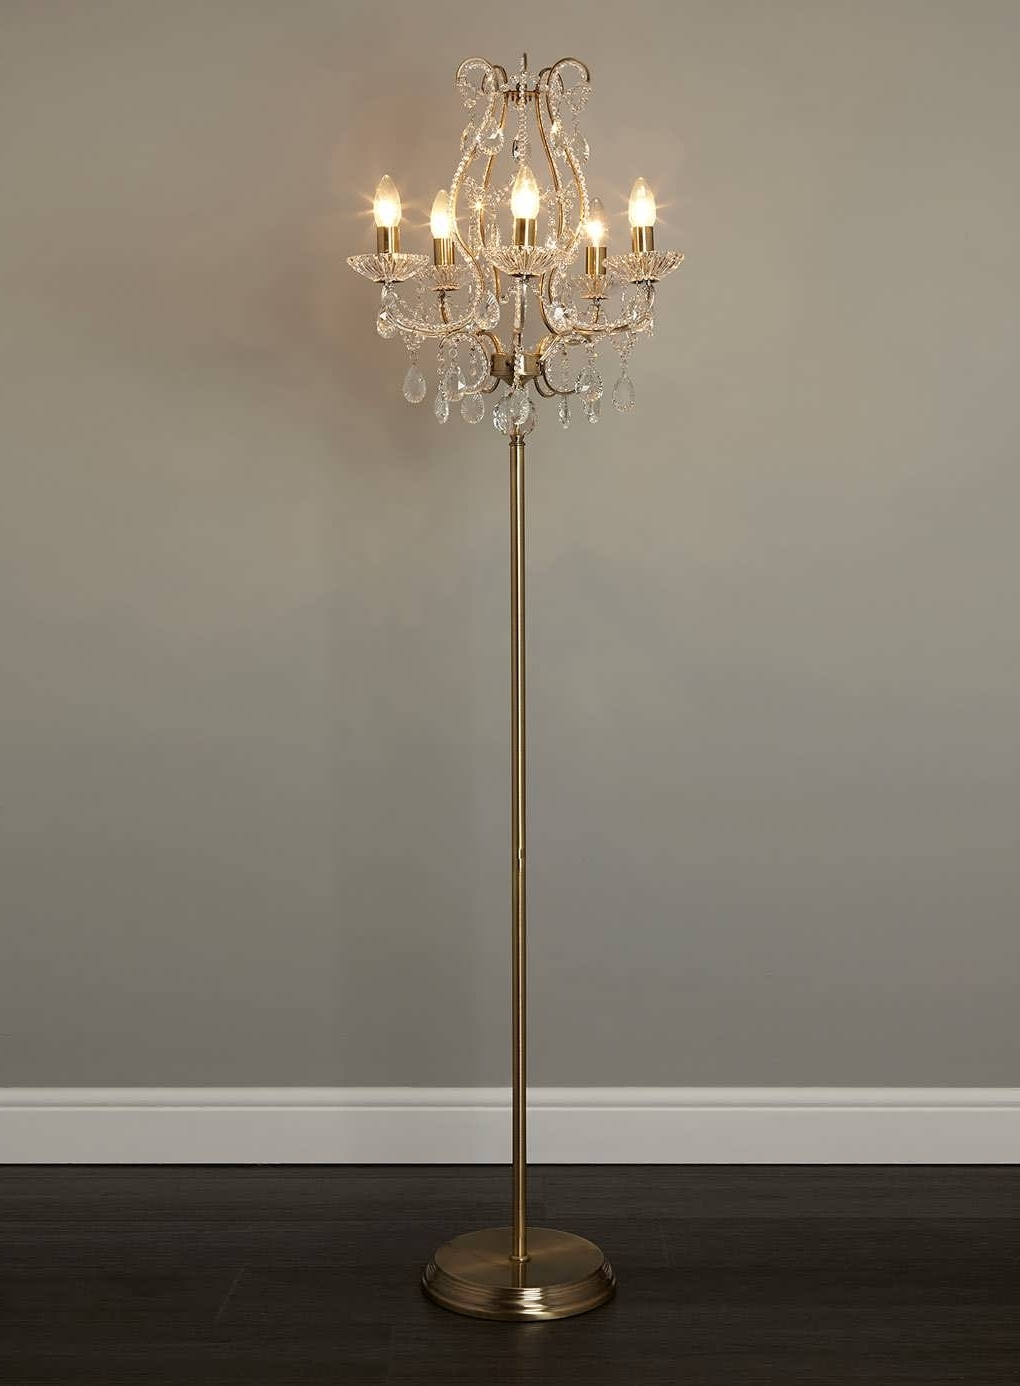 Chandelier Standing Lamps Regarding Best And Newest Wonderful Crystal Chandelier Floor Lamp Standing Lamps Covers Shades (View 4 of 20)